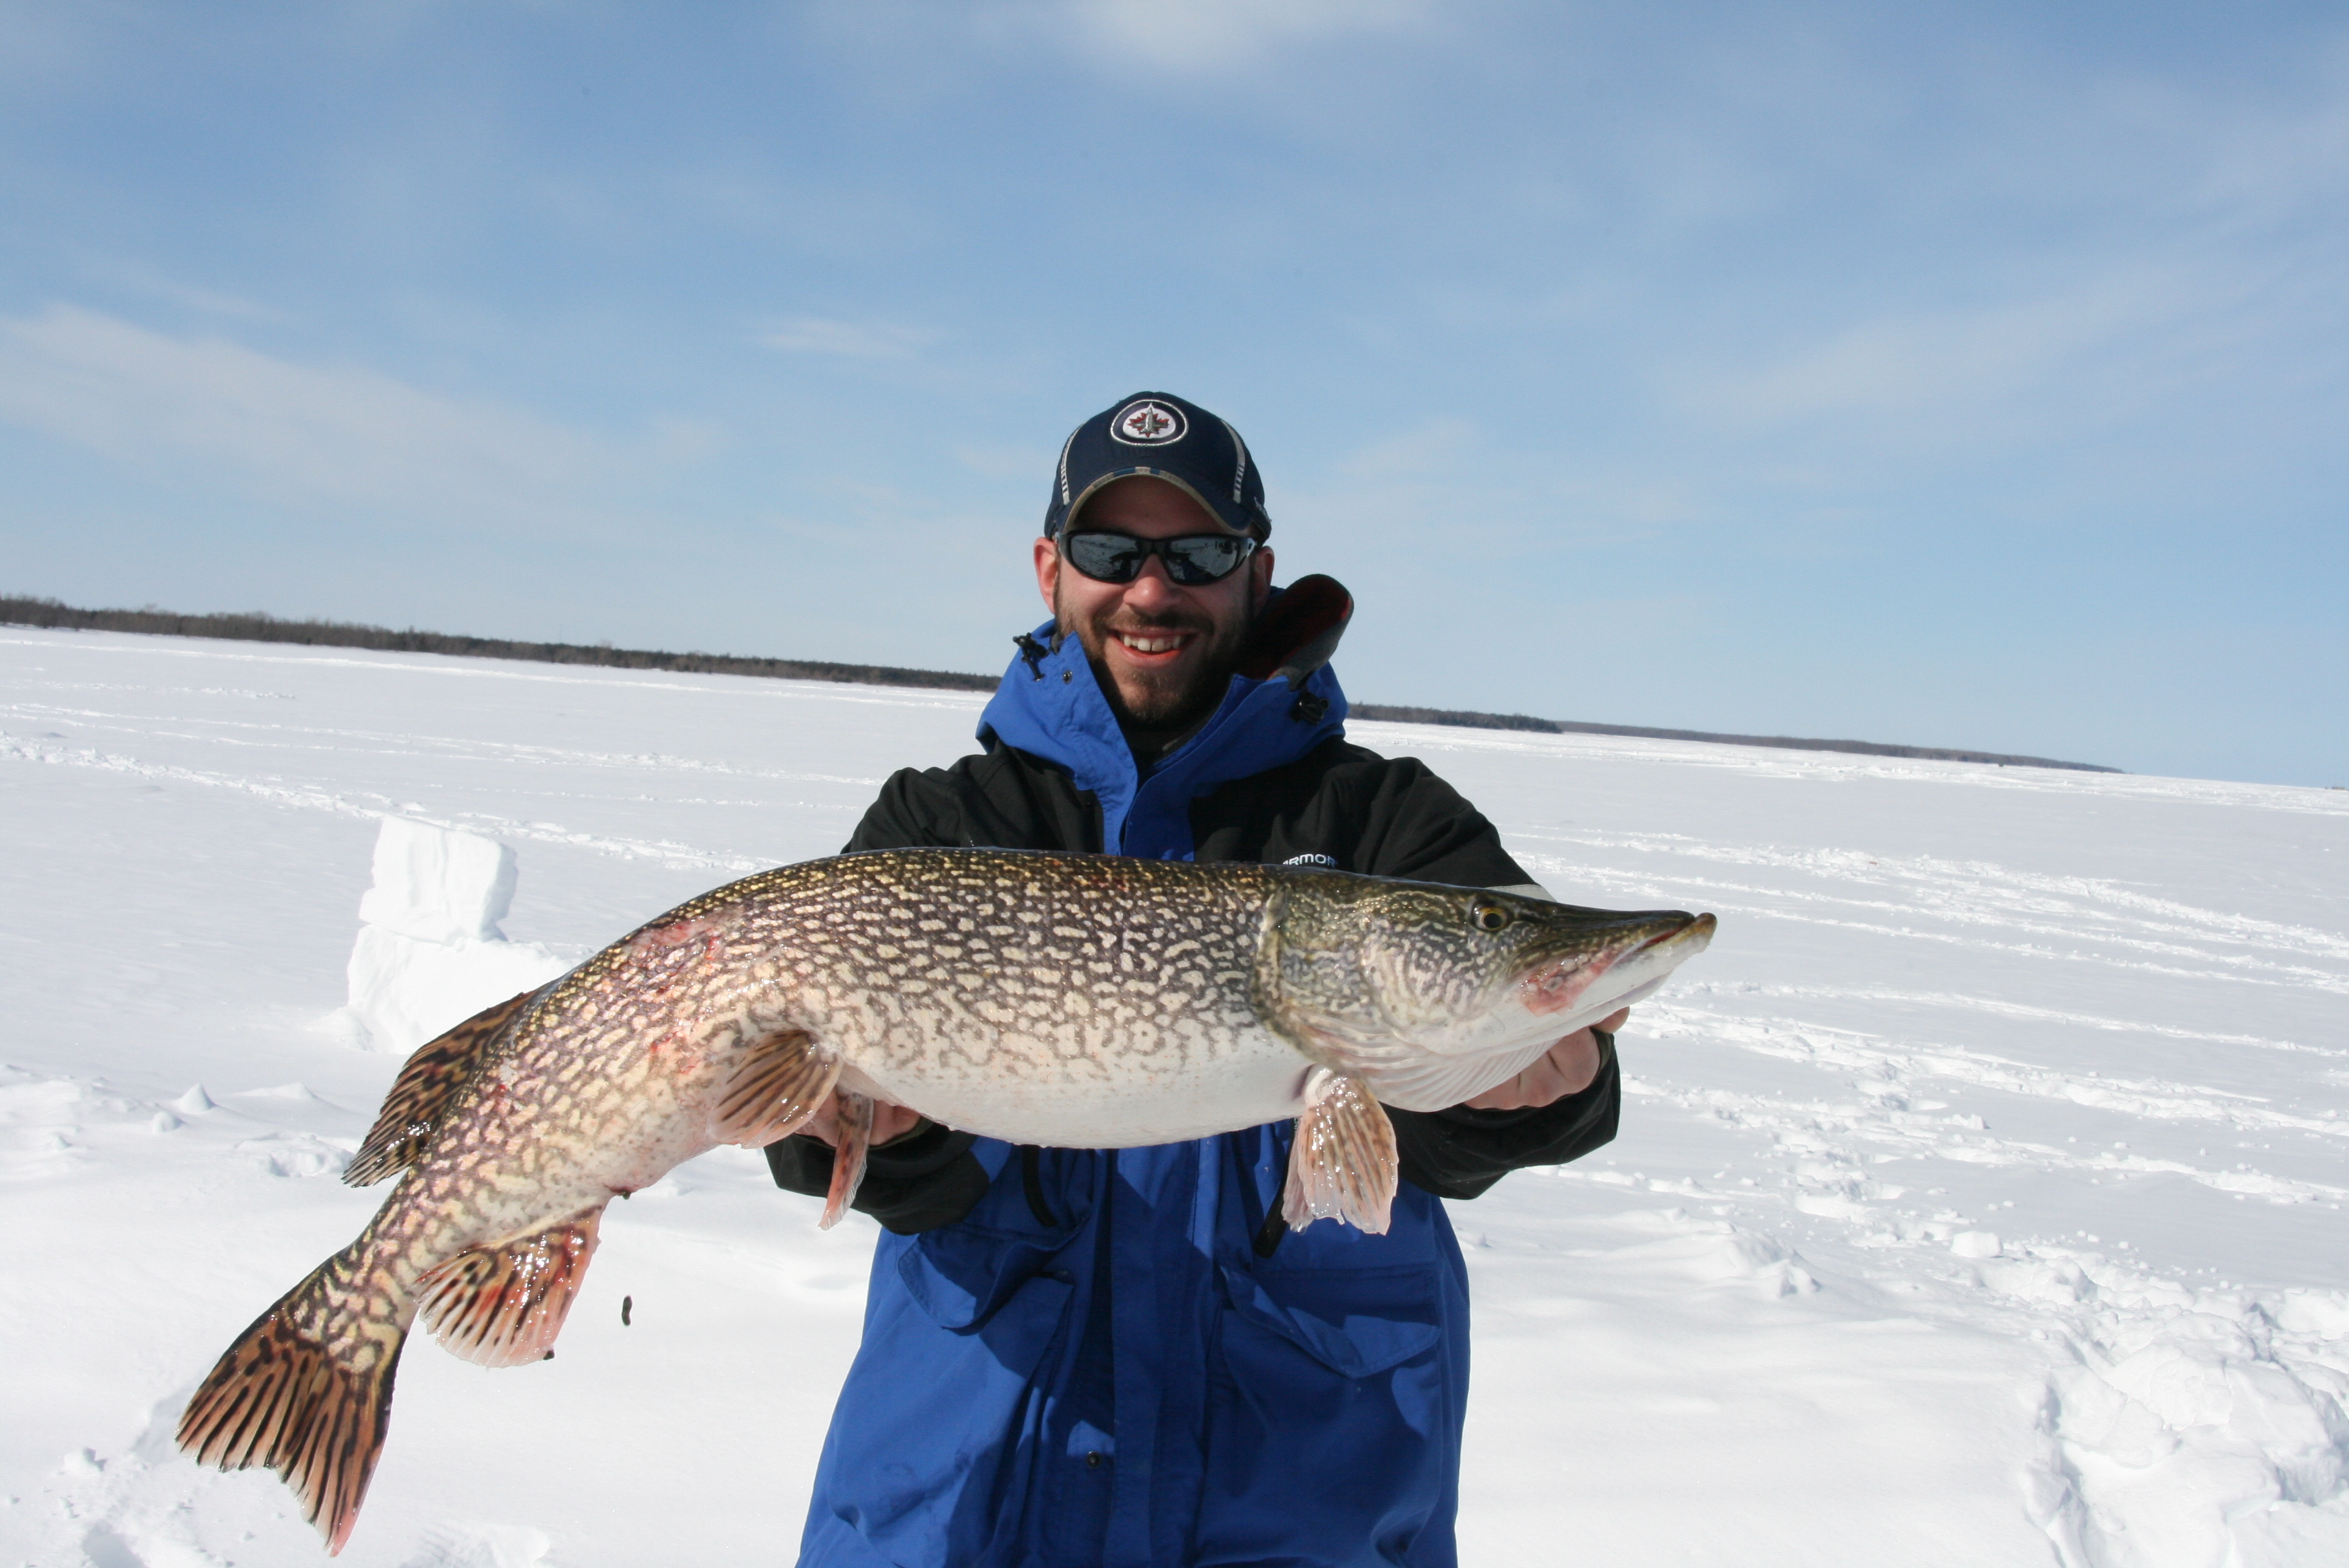 Matt Jauch Bemidji Minnesota  My buddy Landon me come up tip up fishing with him. It was a